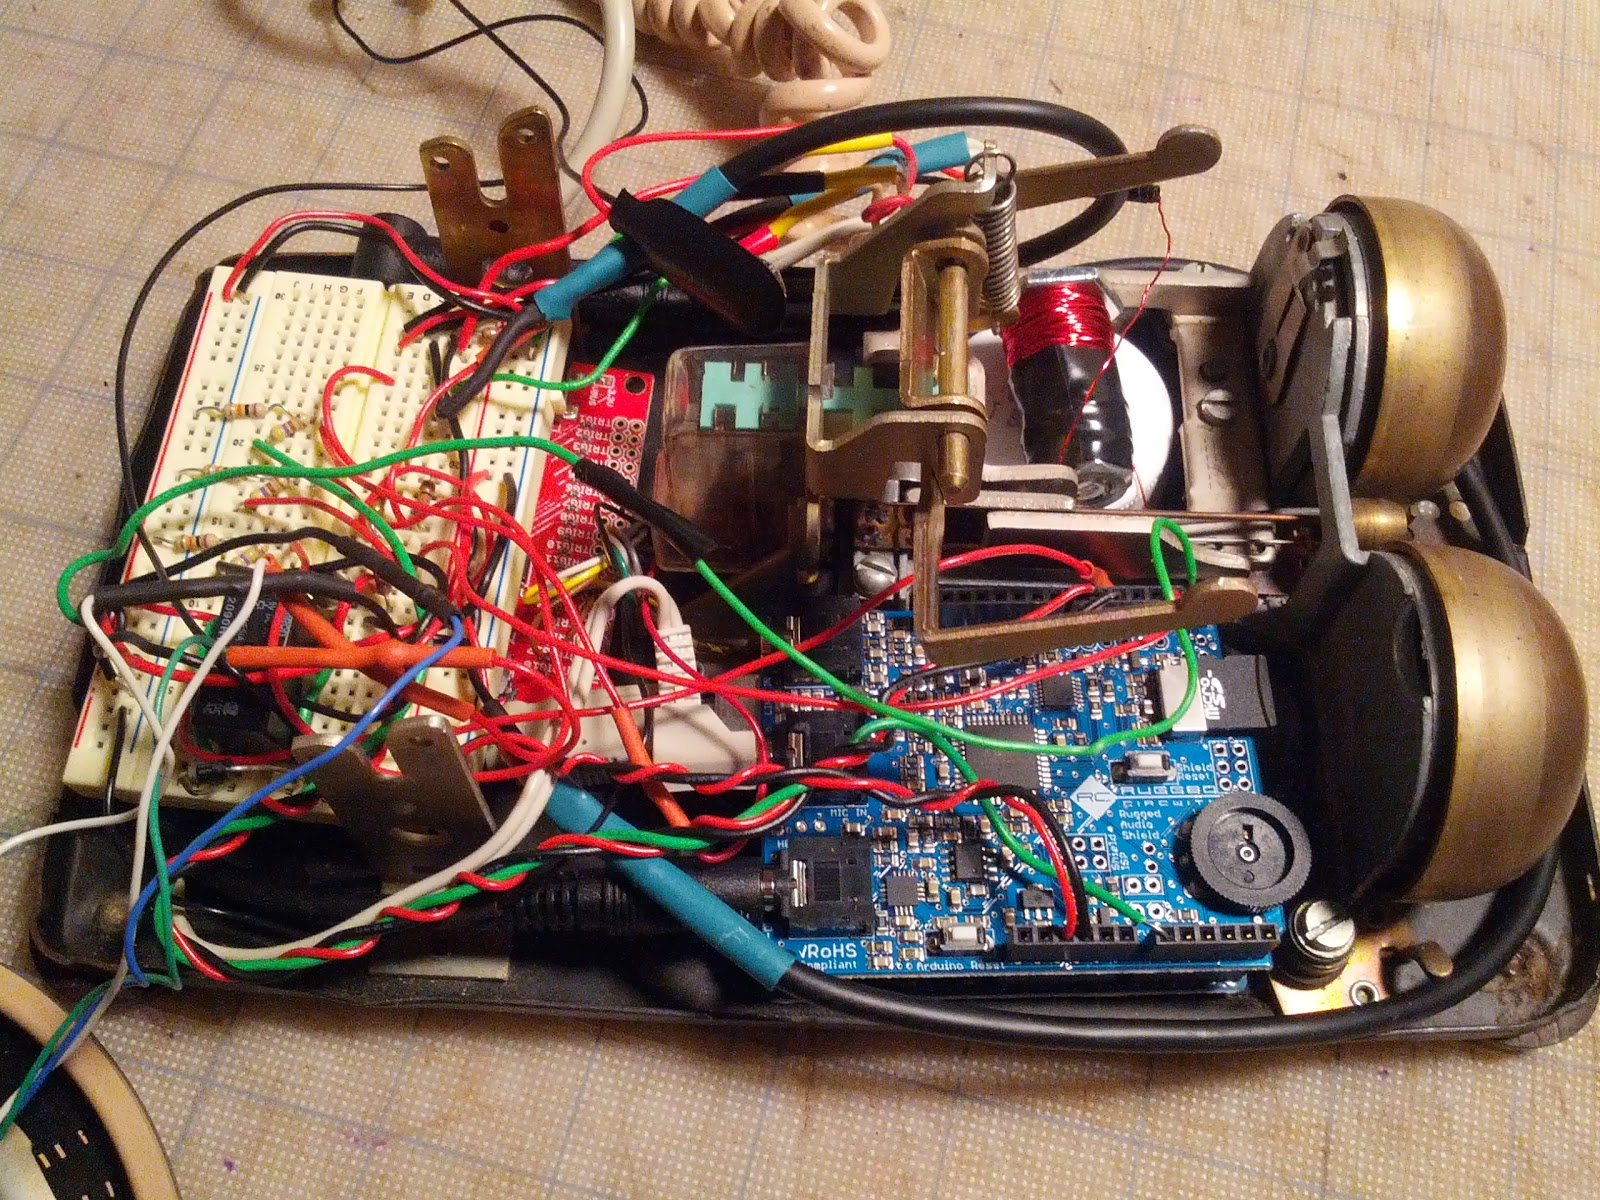 New Project Arduino Rotary Phone Audio Maelstrom Using A Microphone With An Electrical Engineering Some Of The Final Steps Involved Removing Network Terminal From Inside Thats Large Block Wire Connections In Photo Near Top